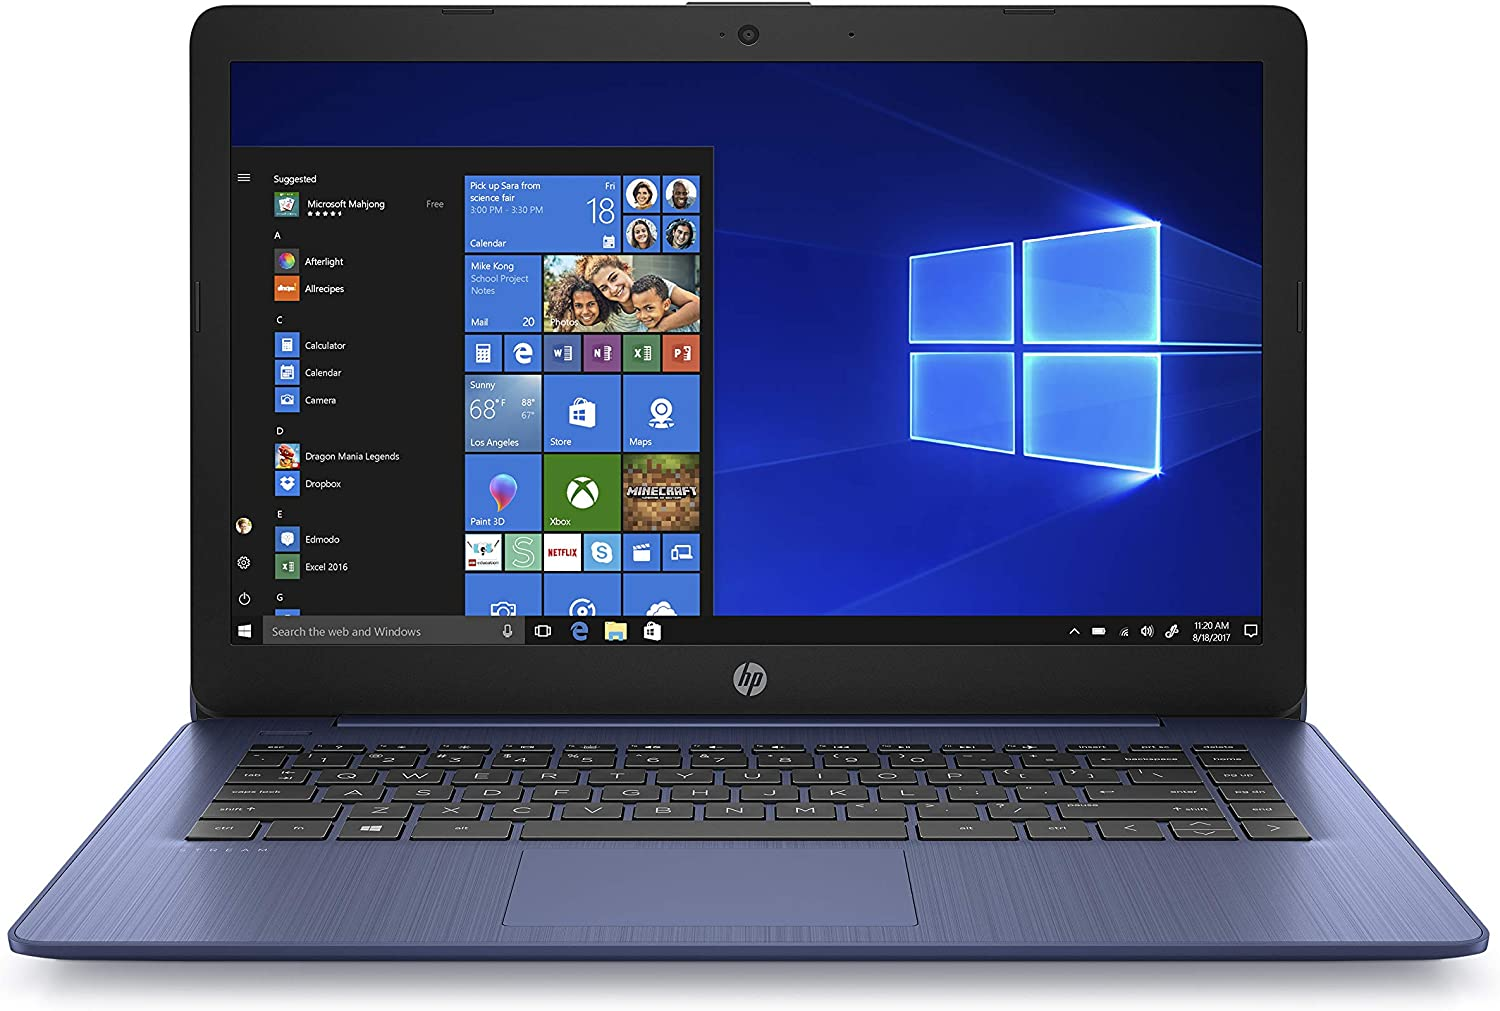 HP Stream 14-inch Laptop, AMD Dual-Core A4-9120E Processor, 4 GB SDRAM, 64 GB eMMC, Windows 10 Home in S Mode with Office 365 Personal for One Year (14-ds0050nr, Royal Blue)